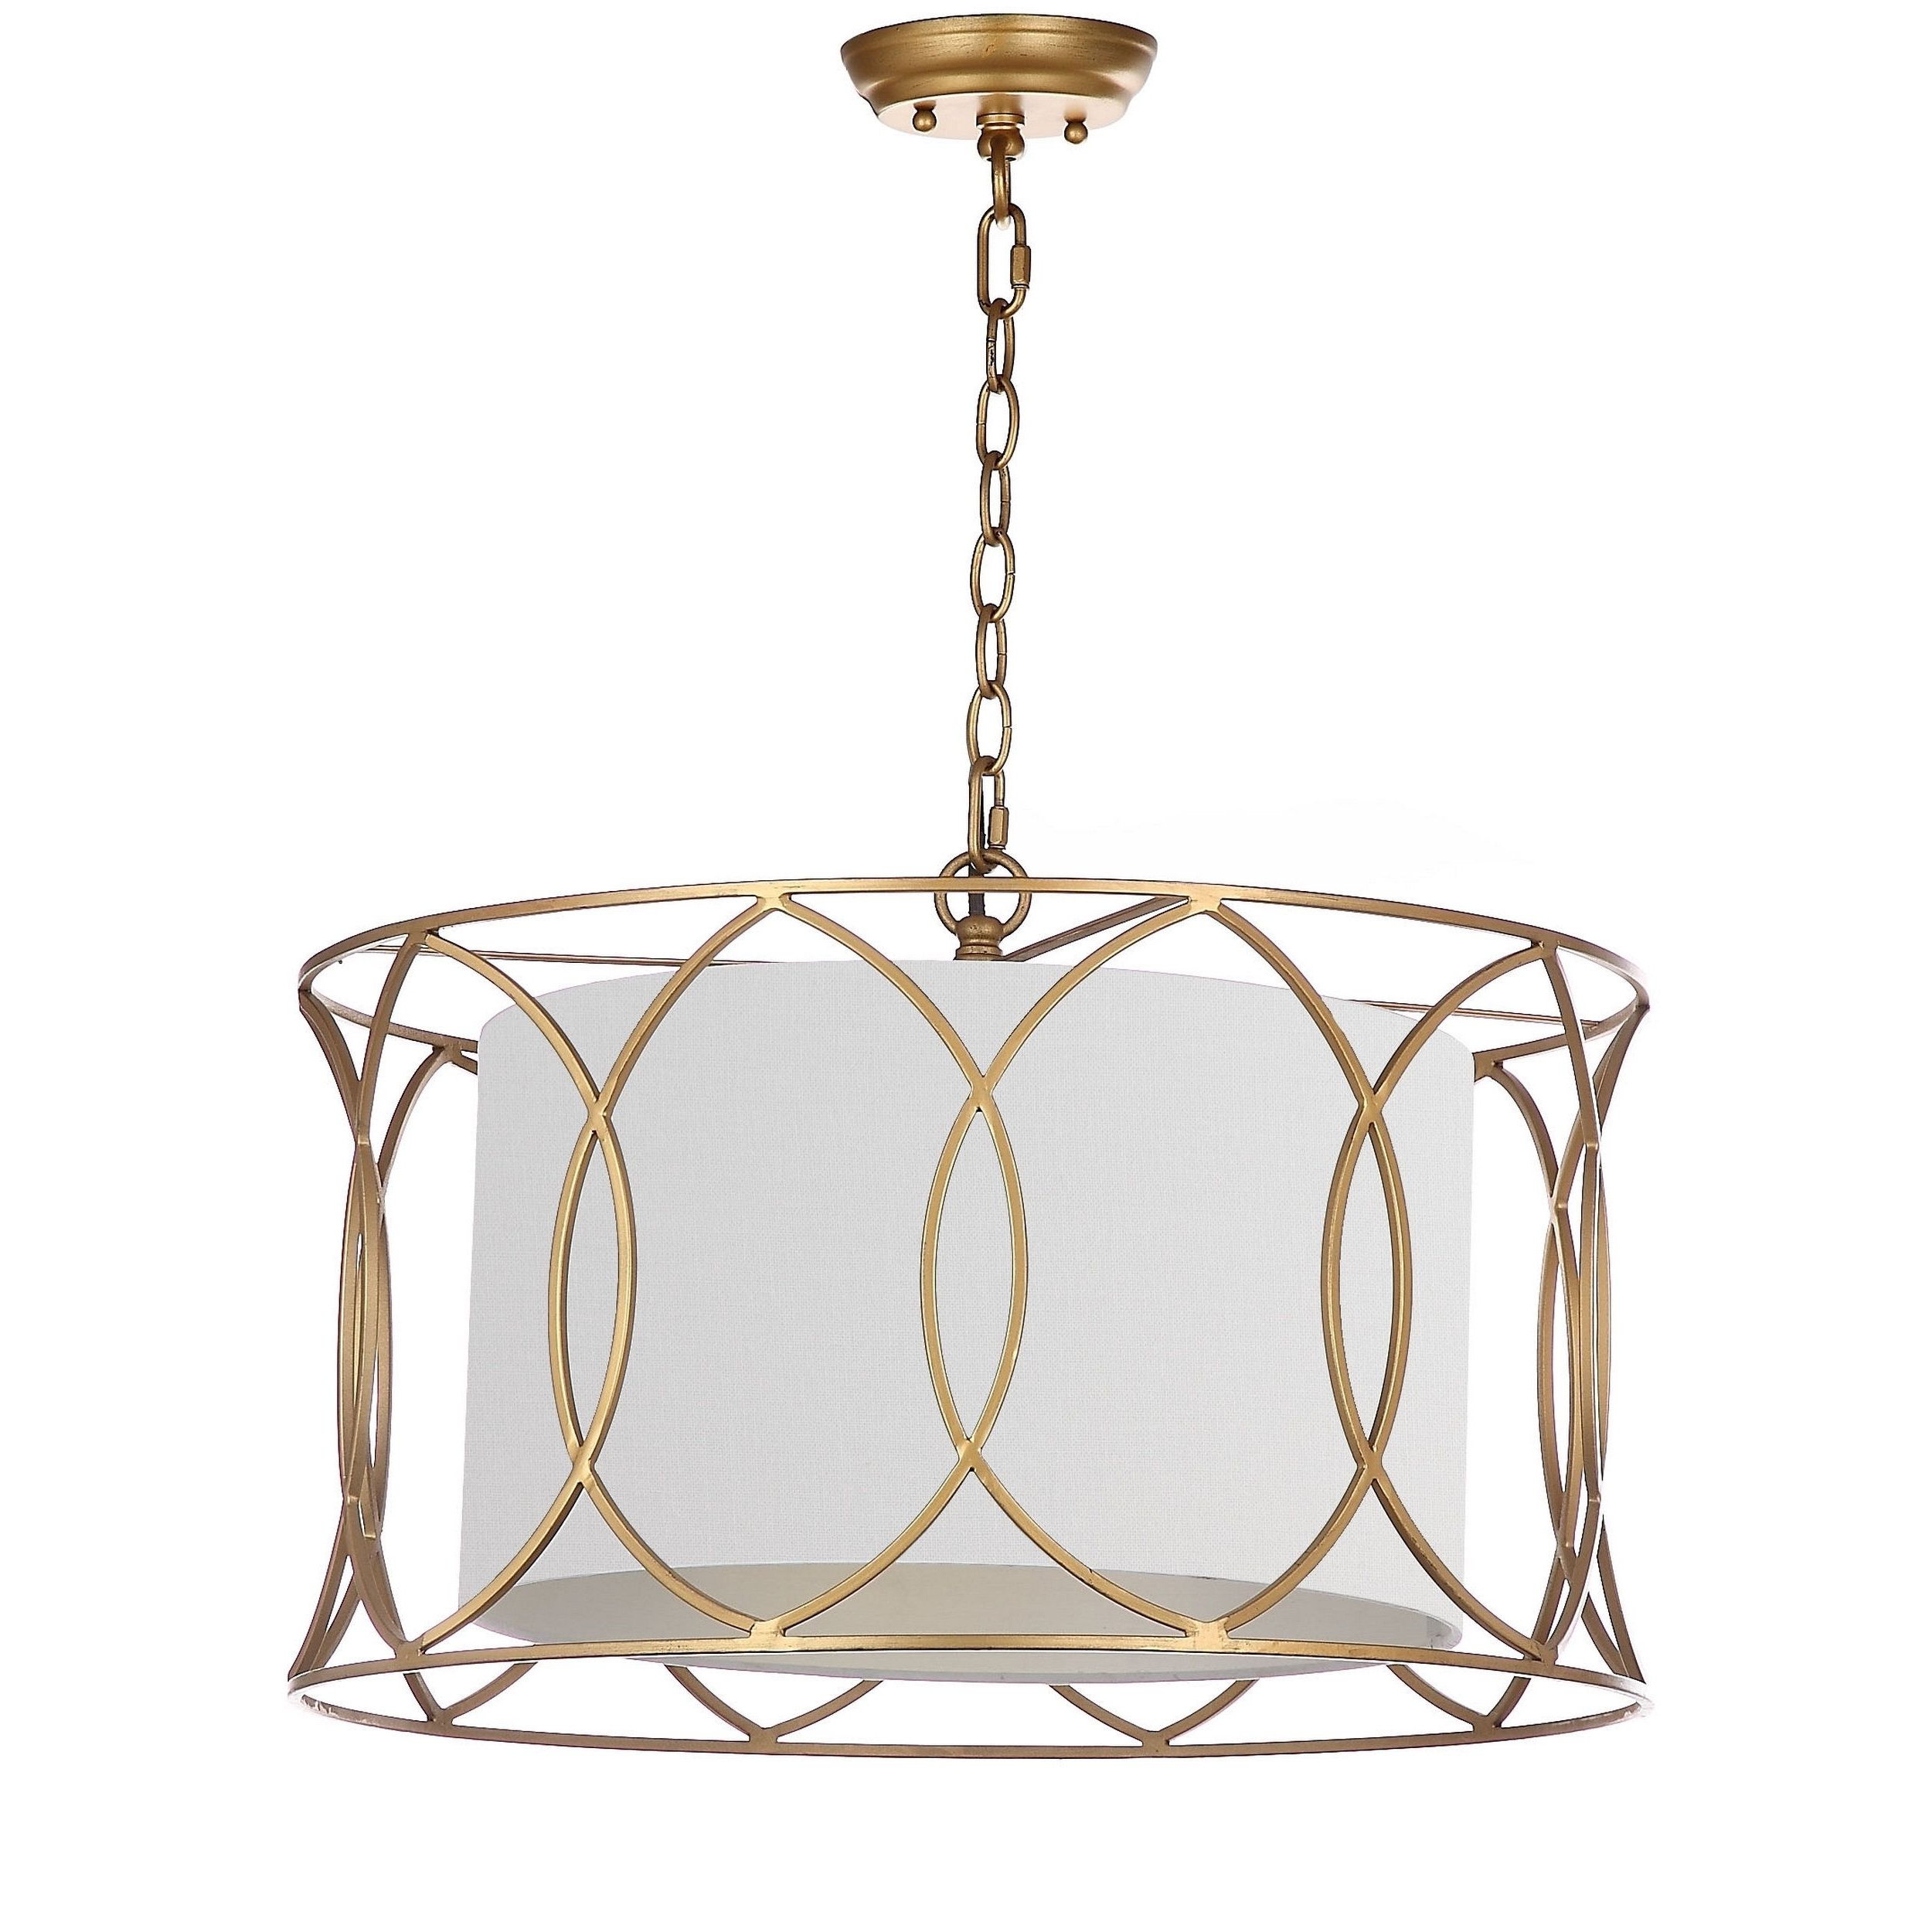 Safavieh Lighting Silas Gold Adjustable Pendant Lamp Intended For Well Liked Balducci 5 Light Pendants (View 14 of 20)